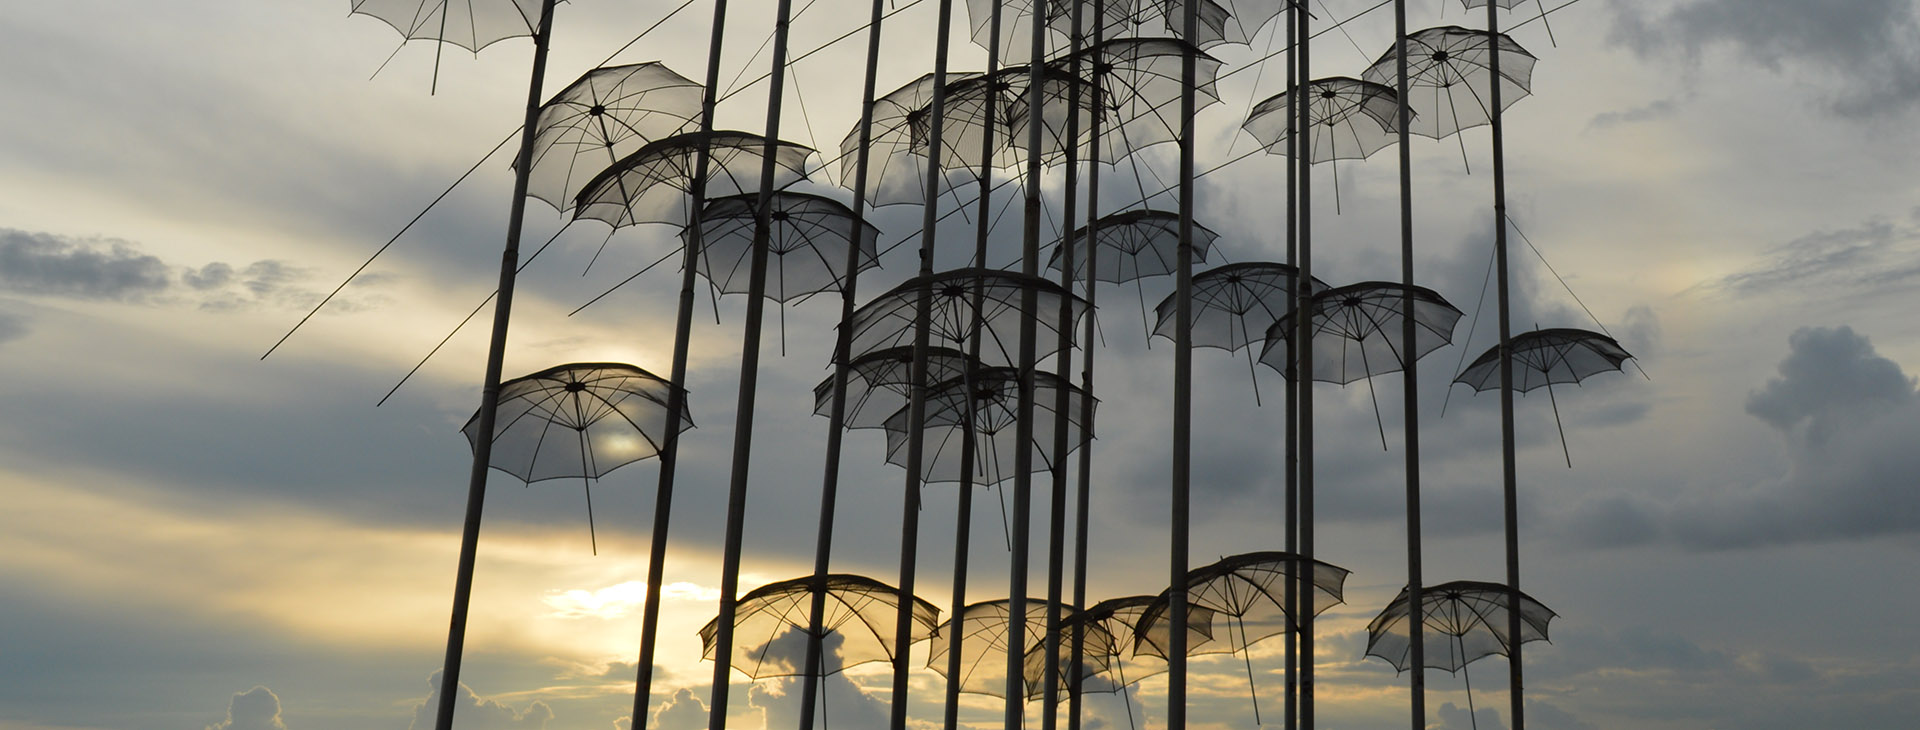 """Umbrellas"" modern art statue during sunset at the seafront of Thessaloniki City"